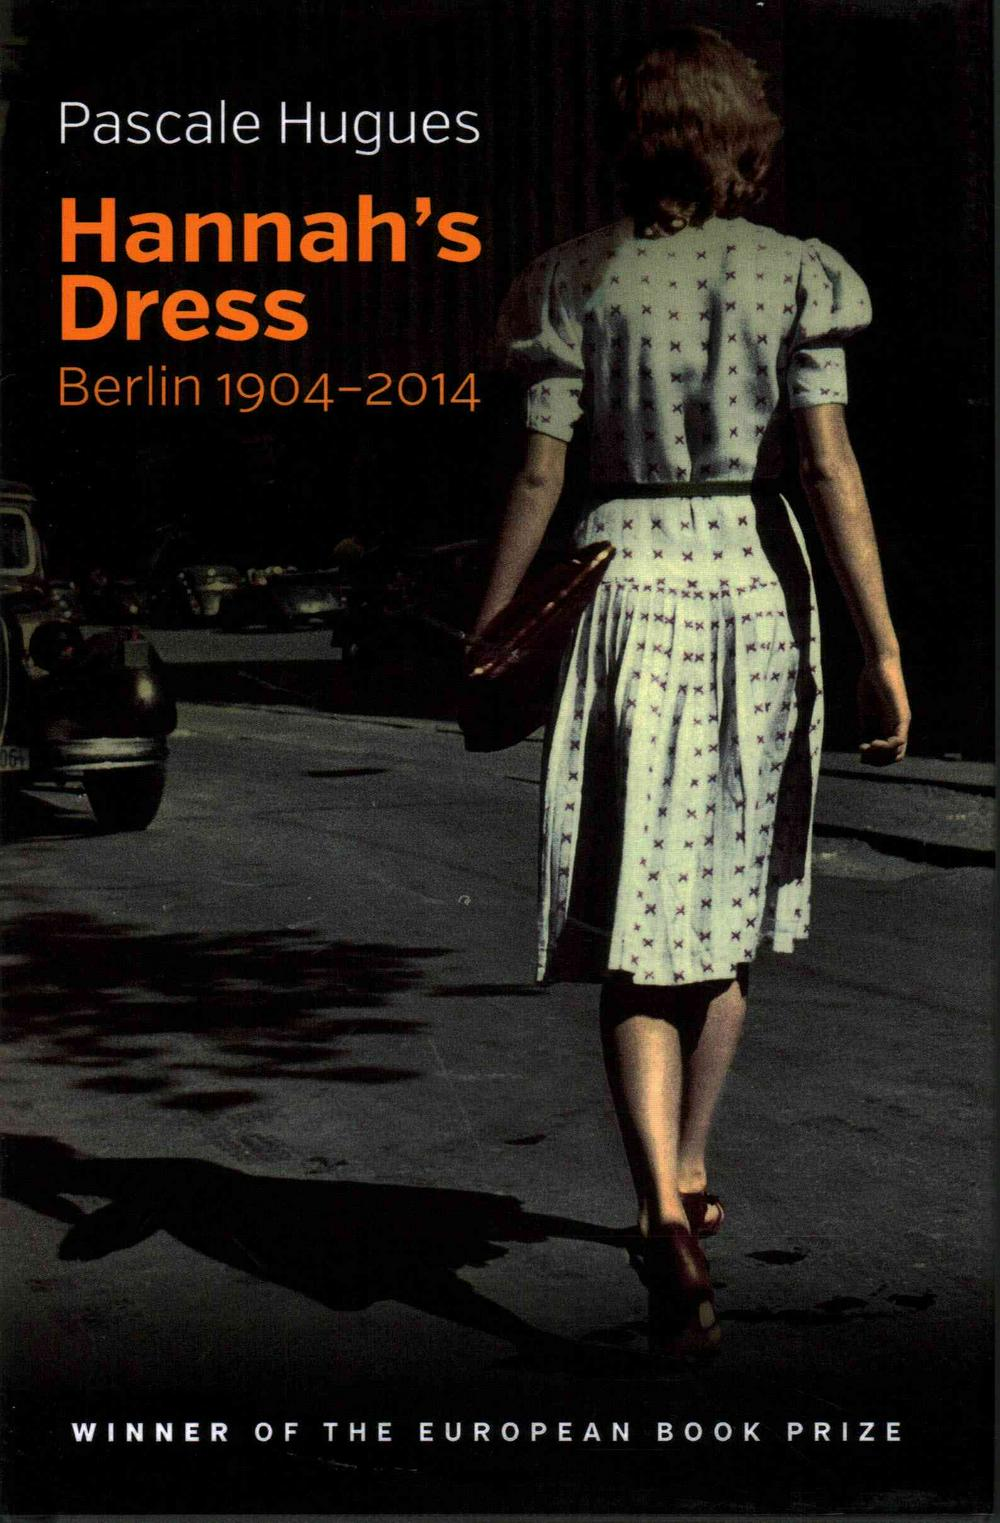 Hannah's Dress - Berlin 1904-2014 by Pascale Hugues, ISBN: 9781509509812